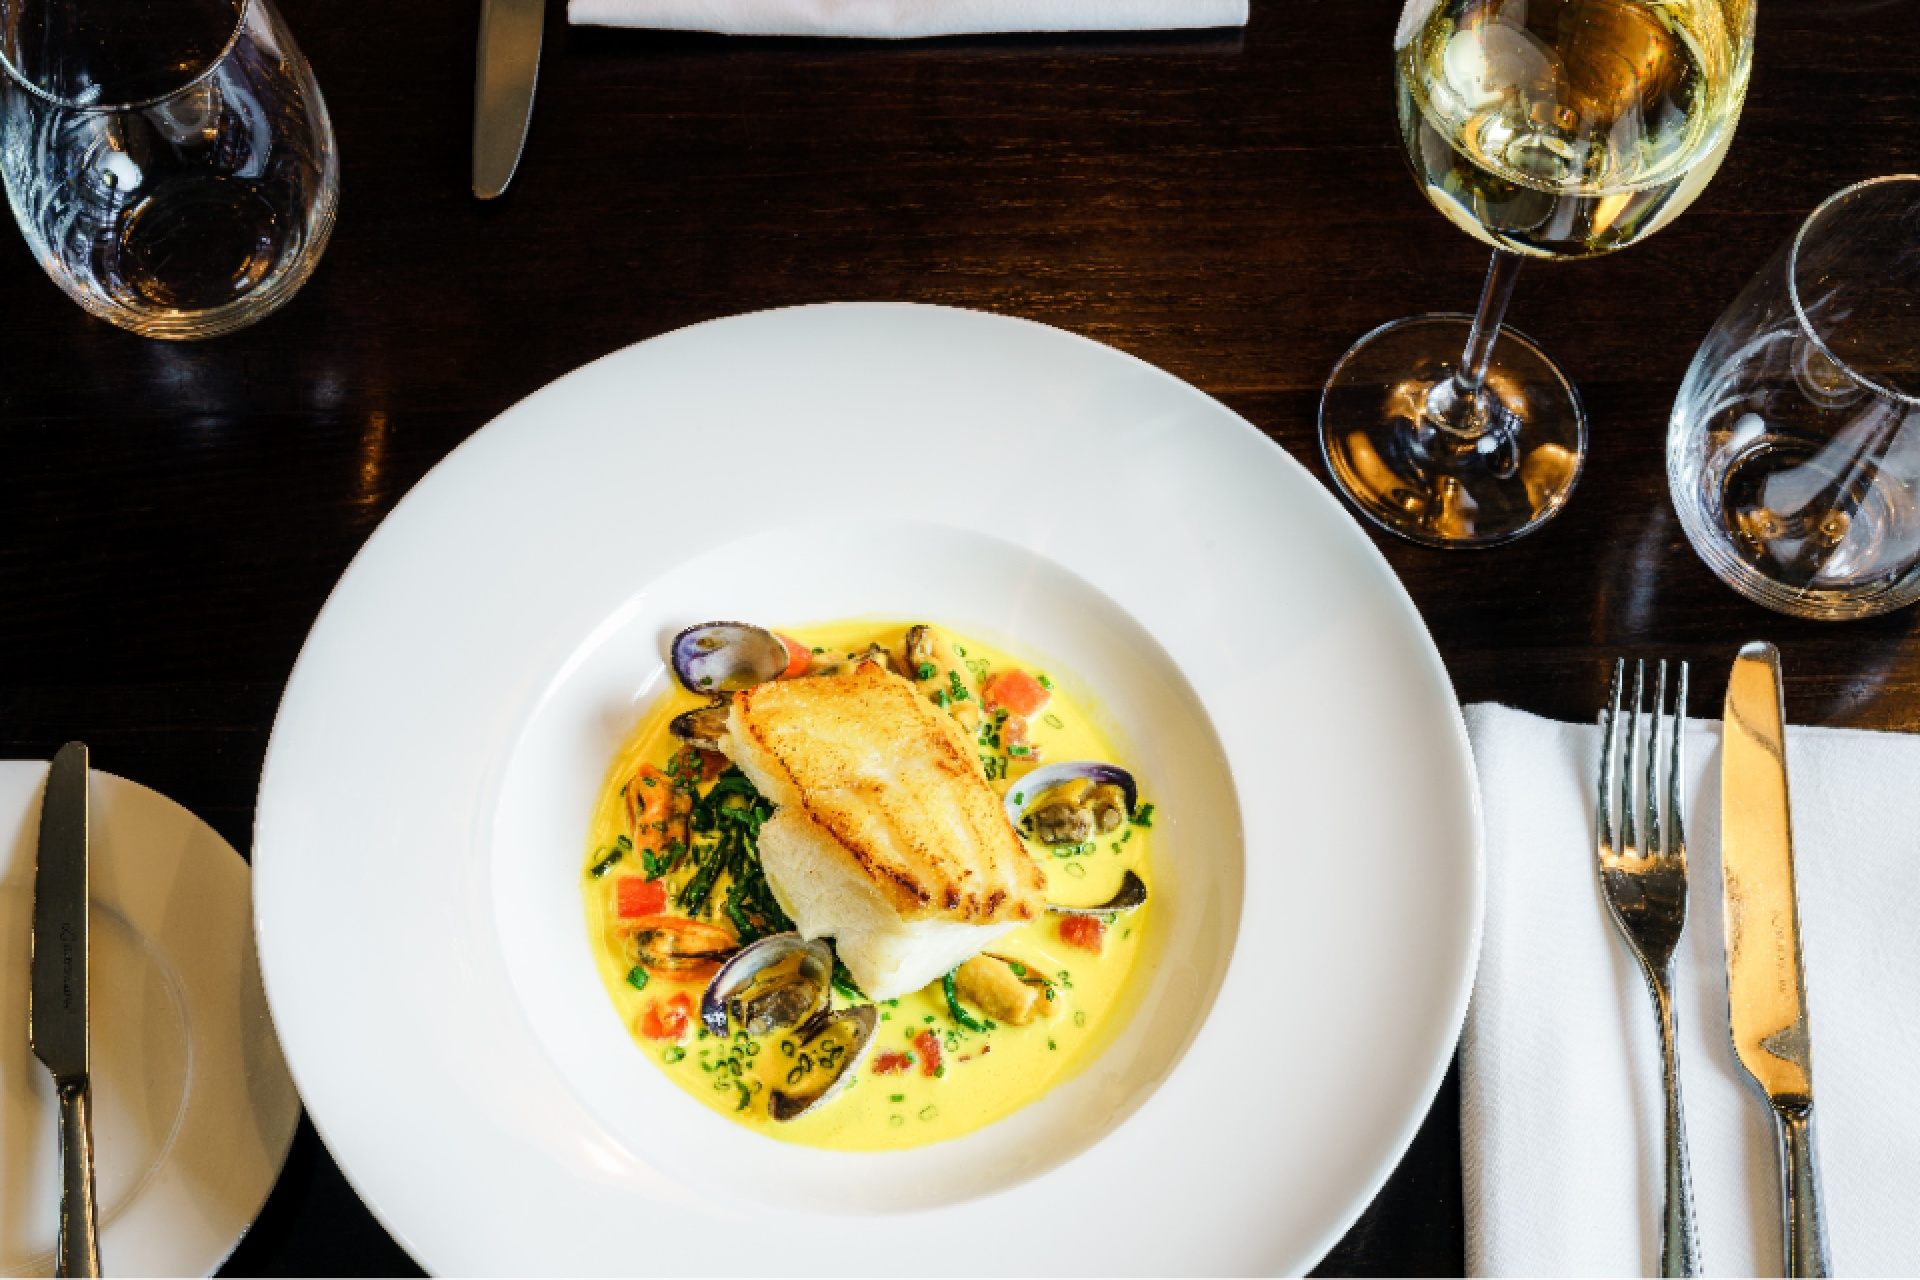 What wines pair with seafood and fish